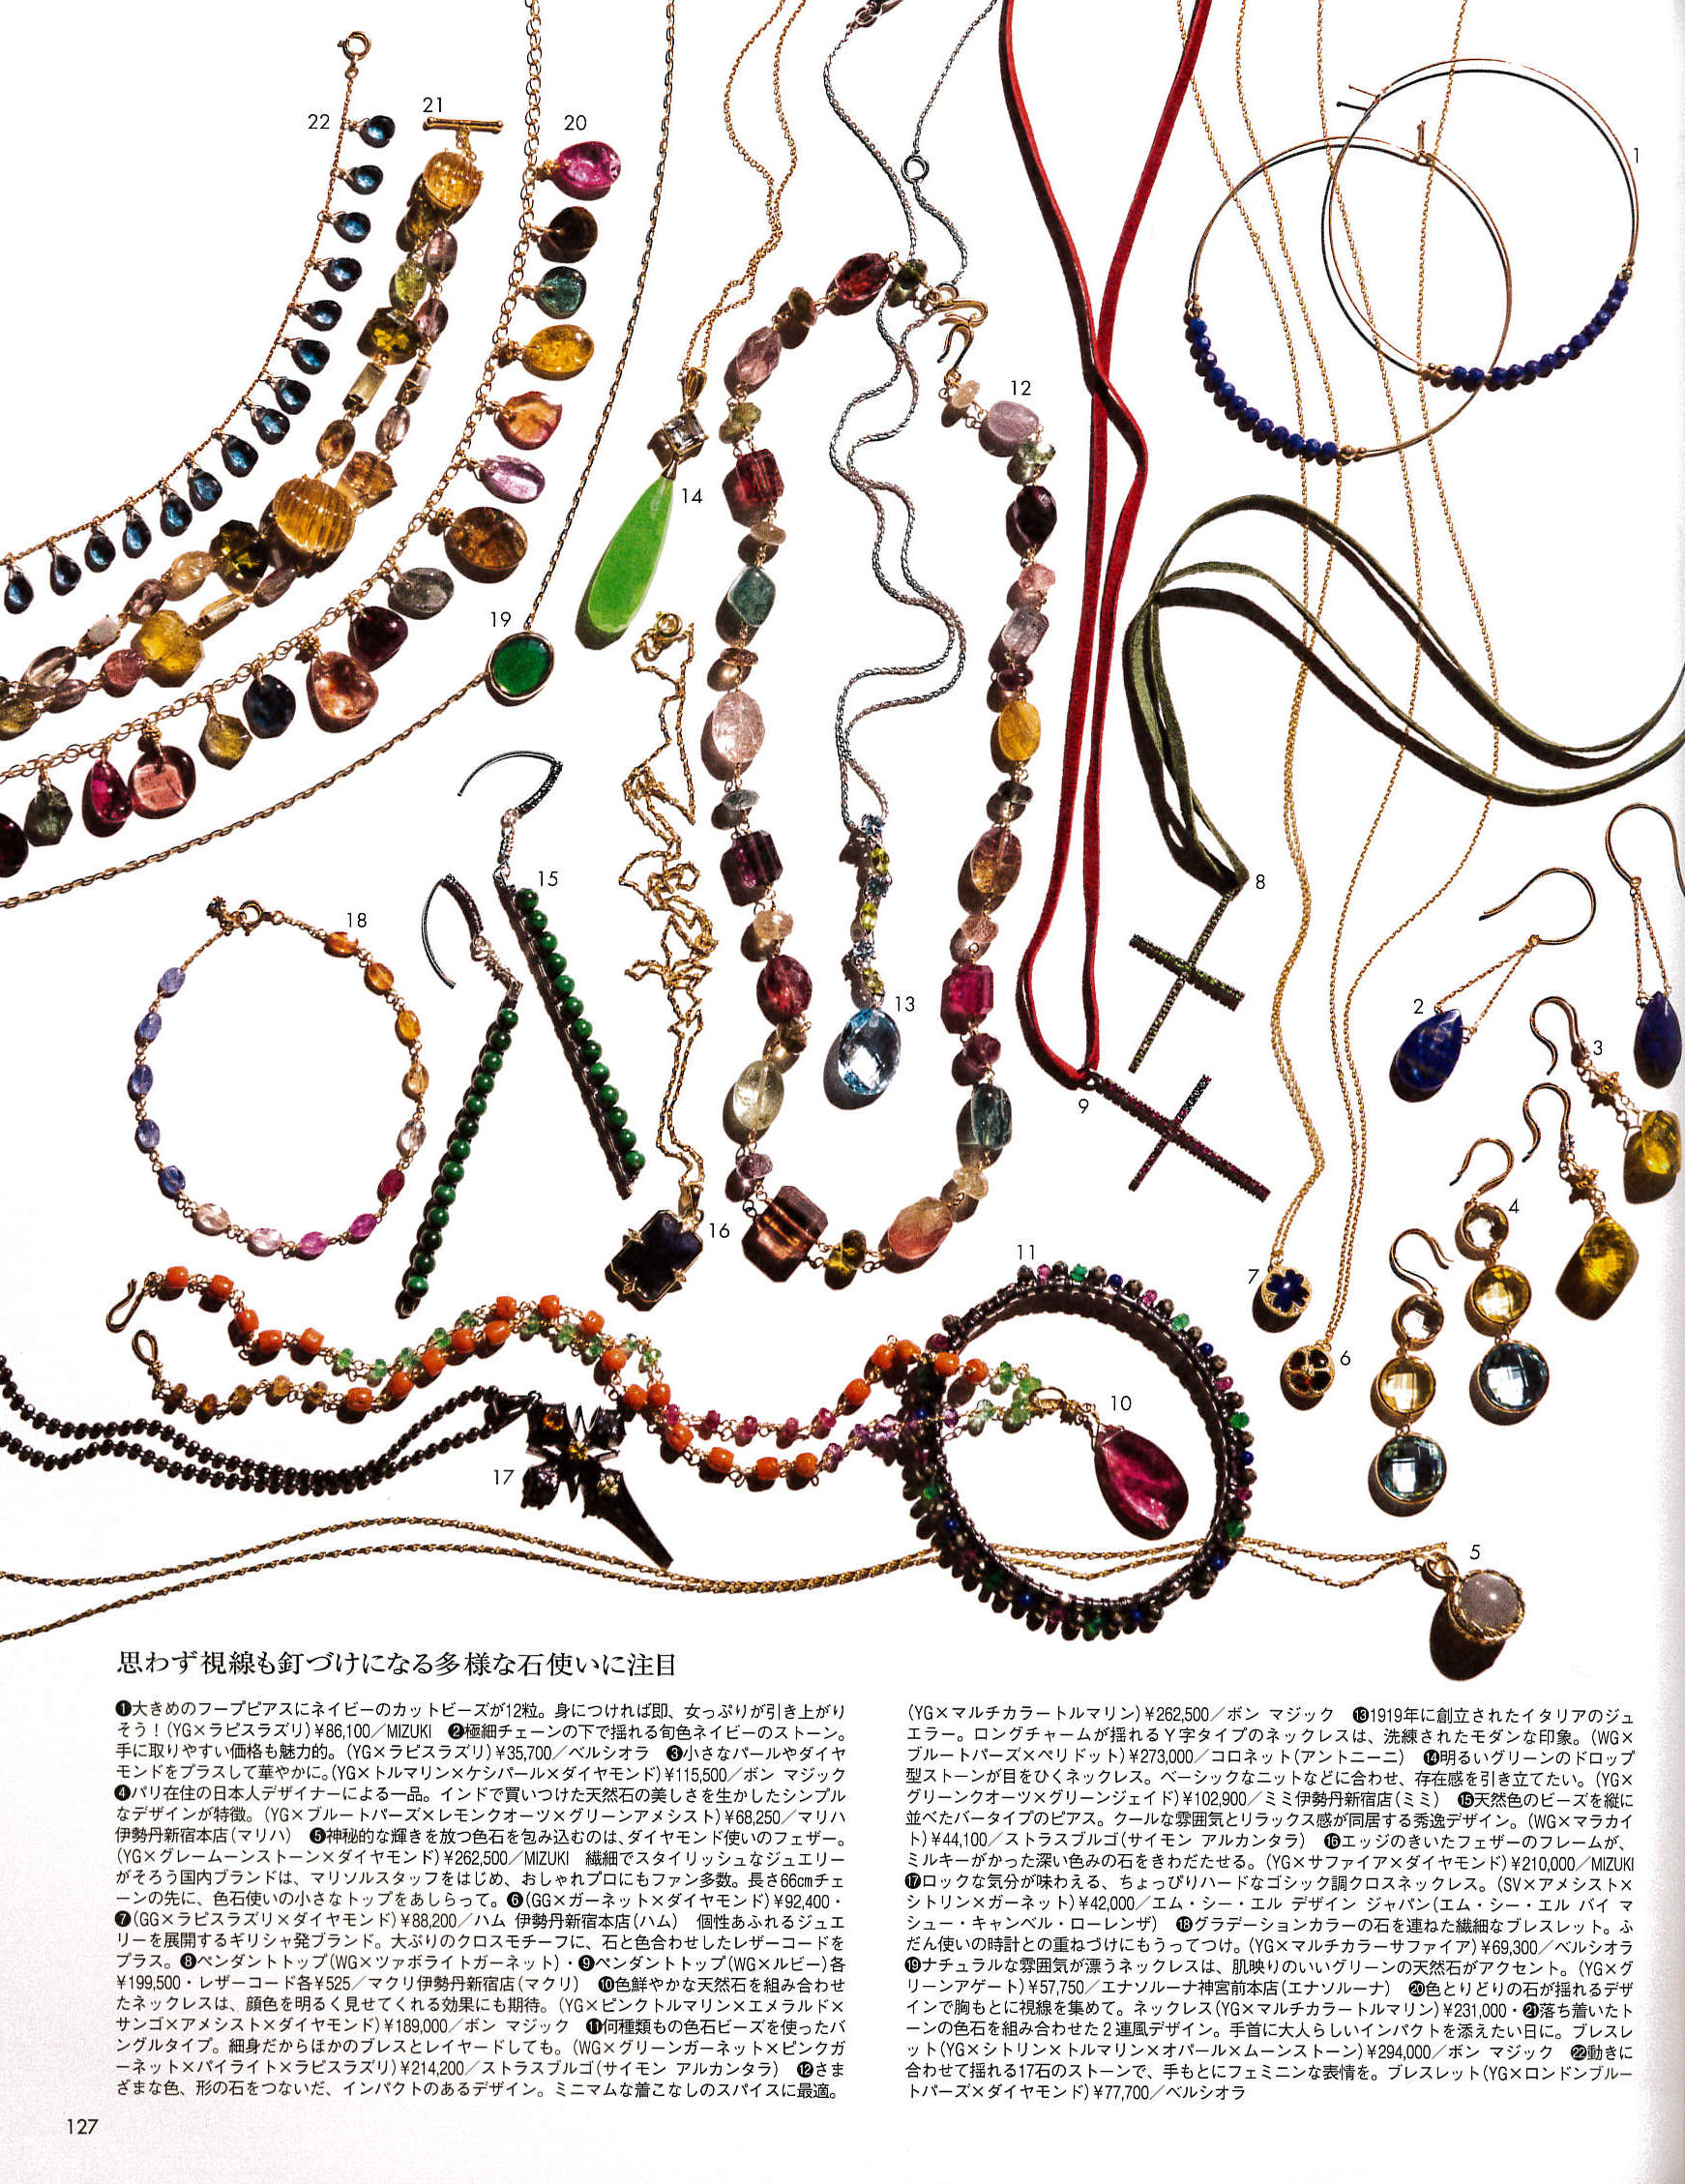 Marisol Magazine Japan: White gold bangle with various stones & Malachite sterling silver bar earrings